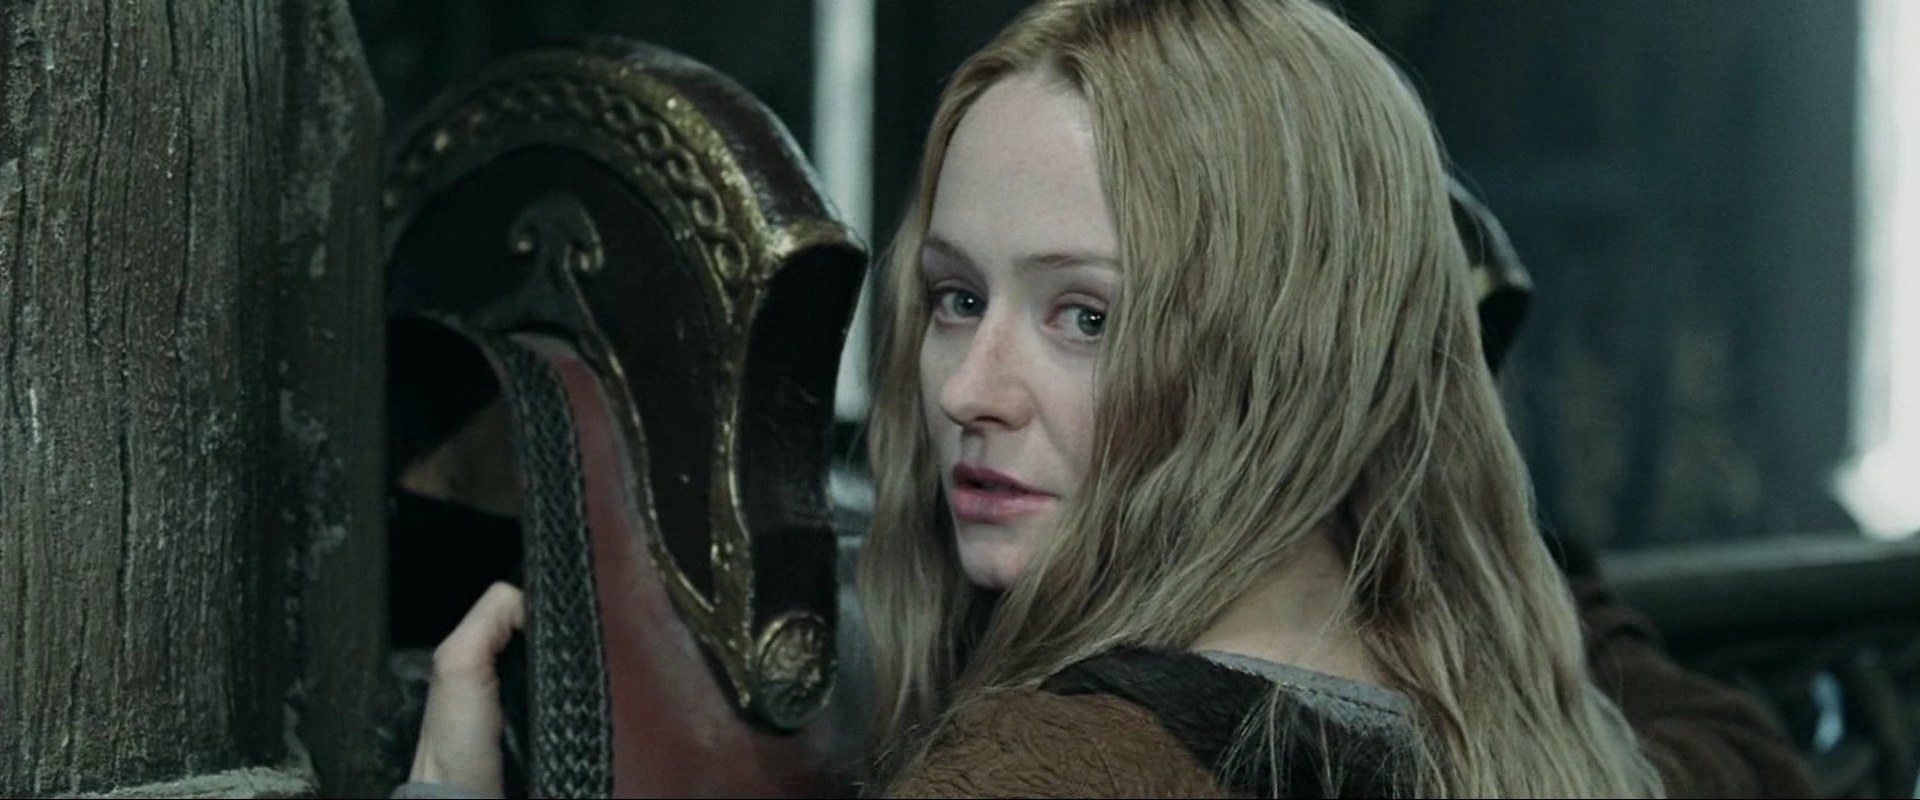 A close up of Éowyn